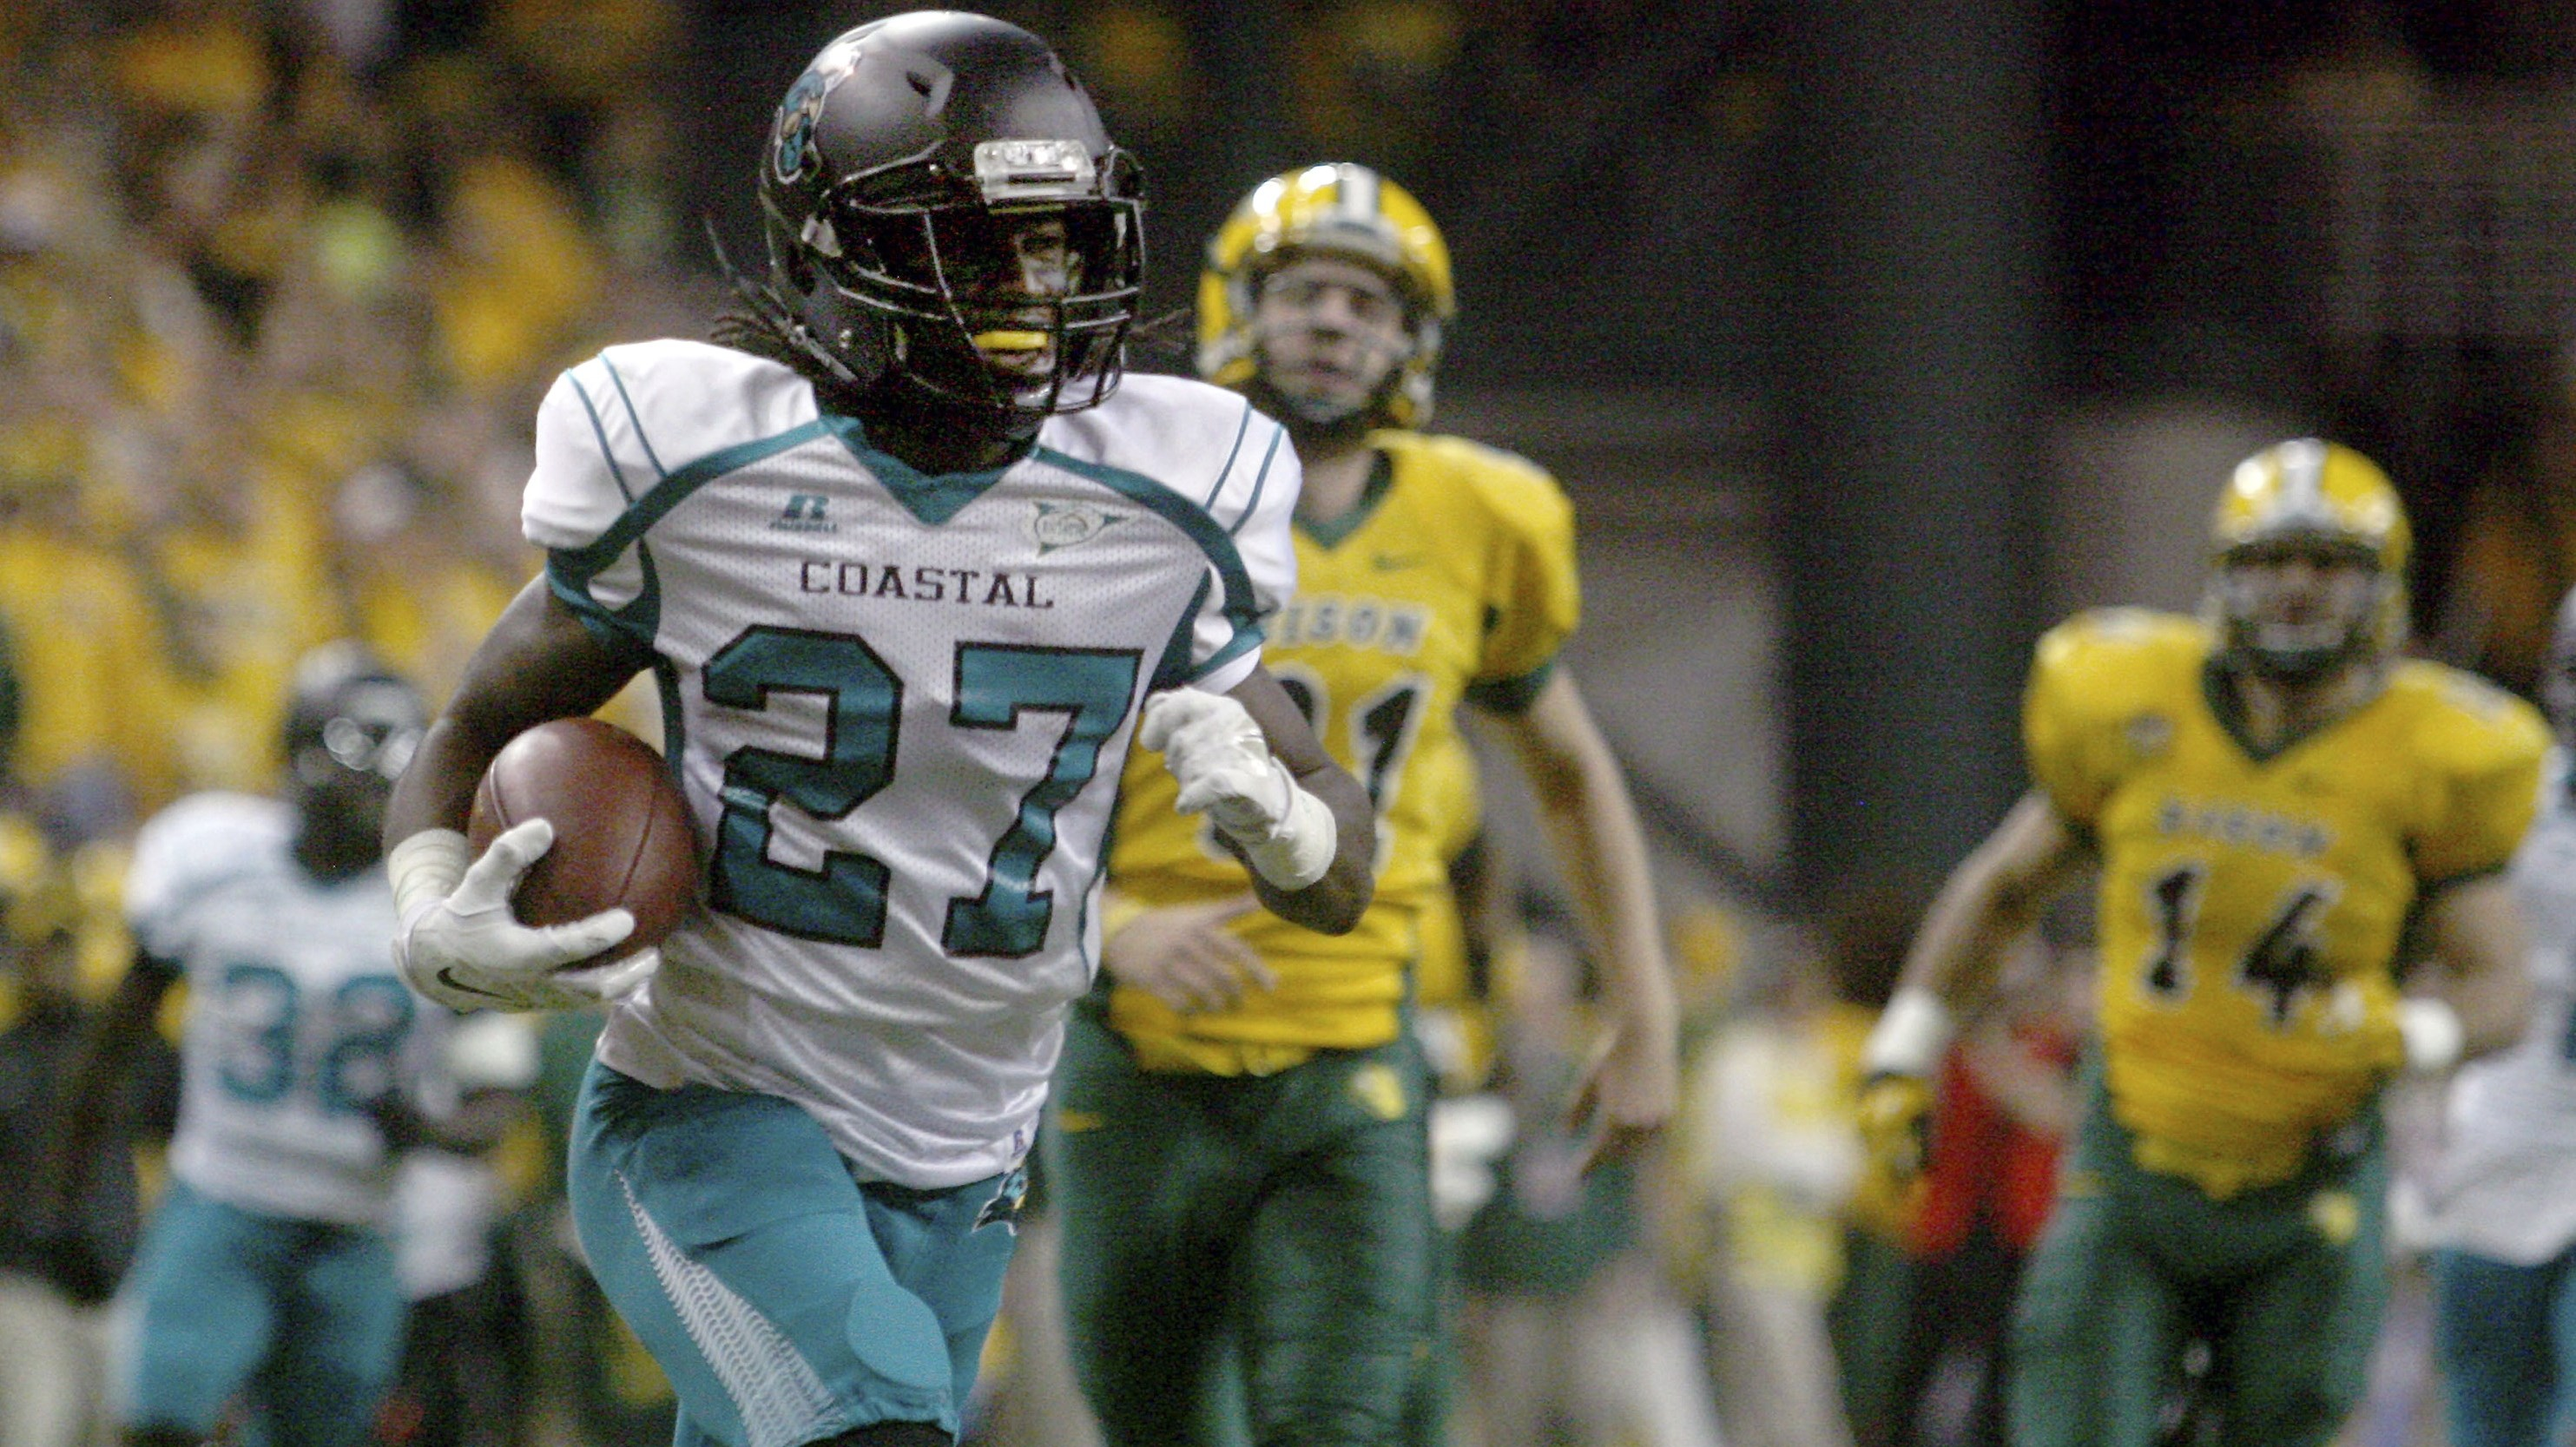 Coastal Carolina wide receiver Devin Brown outruns the North Dakota State defense for touchdown during during the first half of an FCS quarterfinal NCAA college football game Saturday, Dec. 13, 2014, in Fargo, N.D.  (AP Photo/Bruce Crummy)